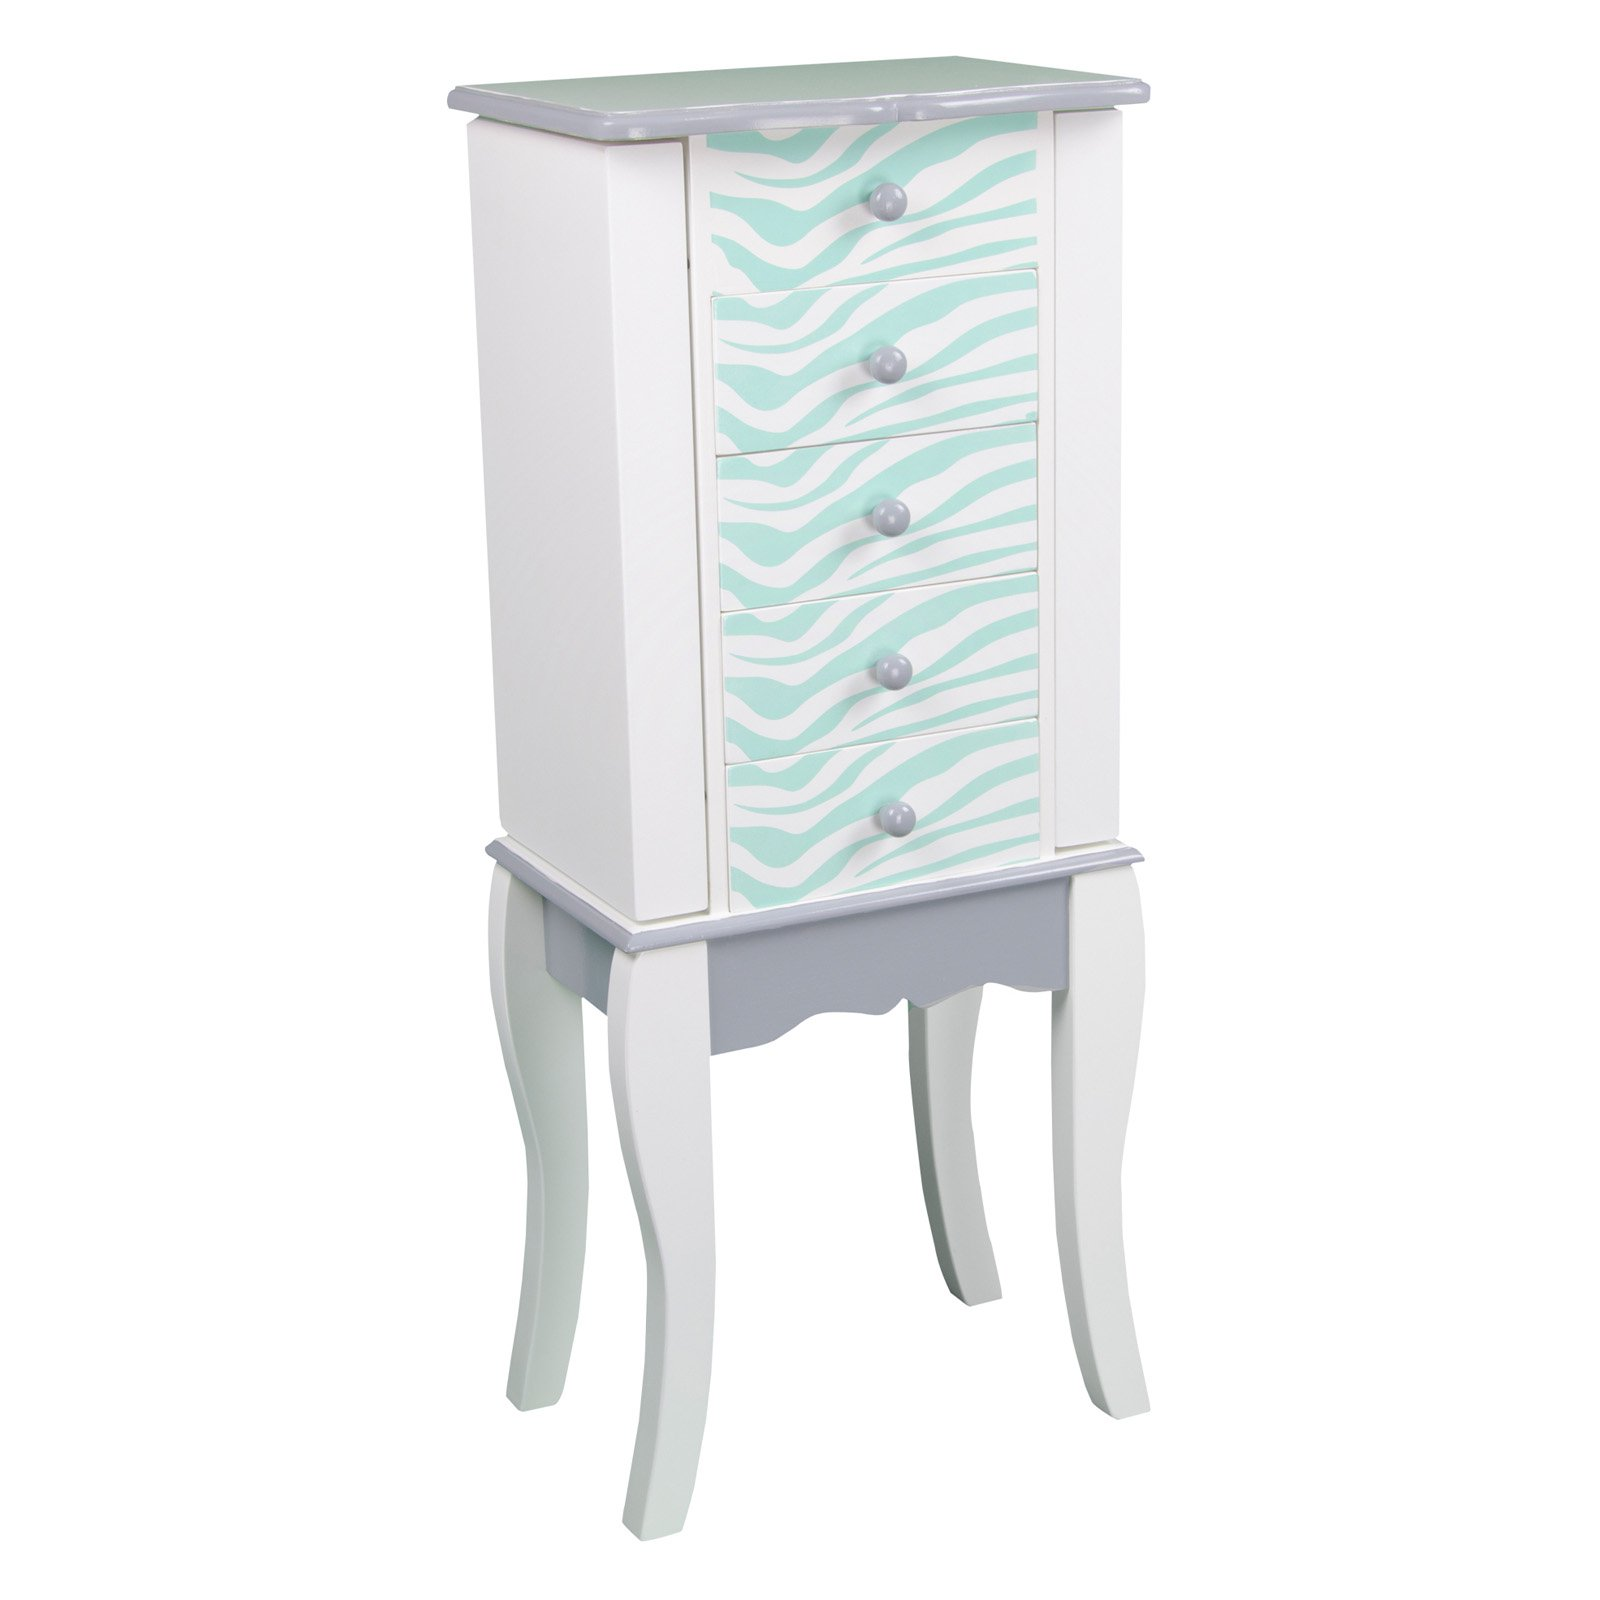 Teamson Kids Fashion Prints Jewelry Armoire Zebra (Aqua Blue   White) by Teamson Design Corporation